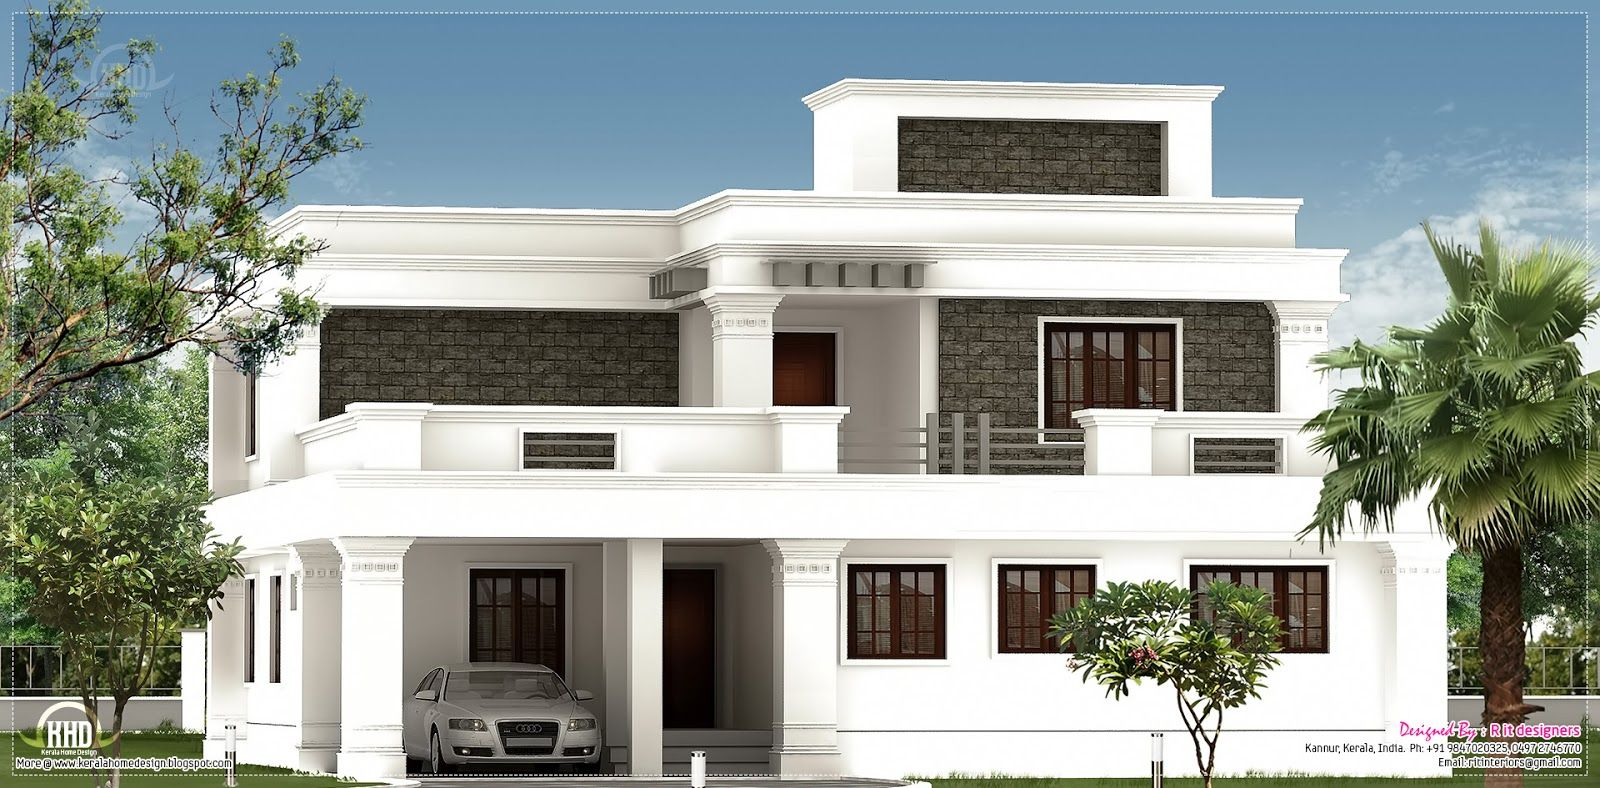 Flat roof homes designs flat roof villa exterior in 2400 for Exterior house designs indian style